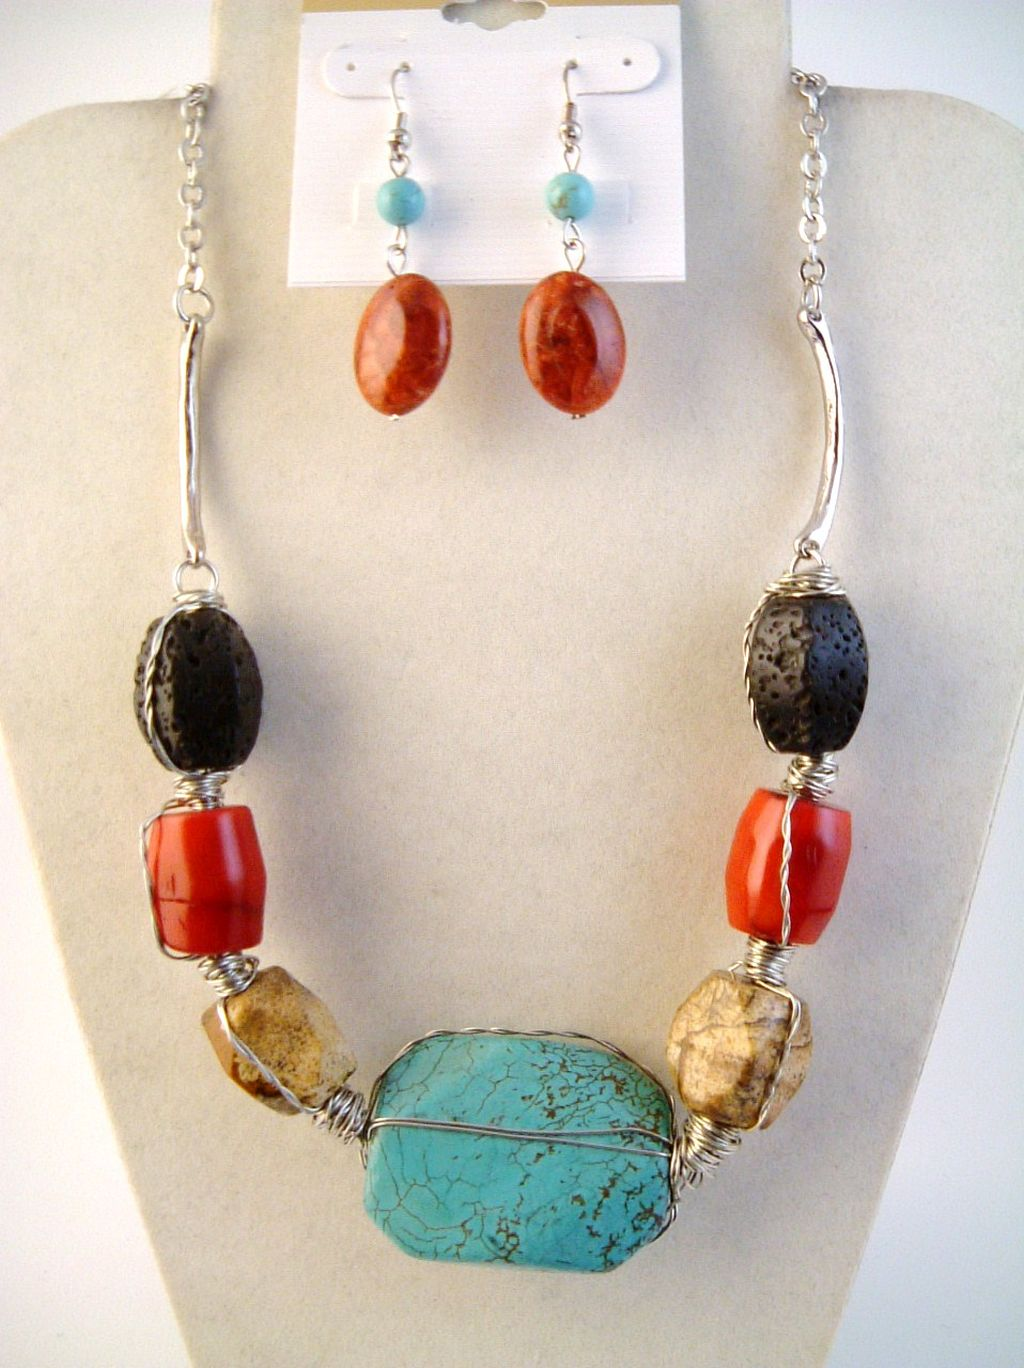 Large Turquoise Red Black Genuine Stones Necklace Earrings Jewelry Set